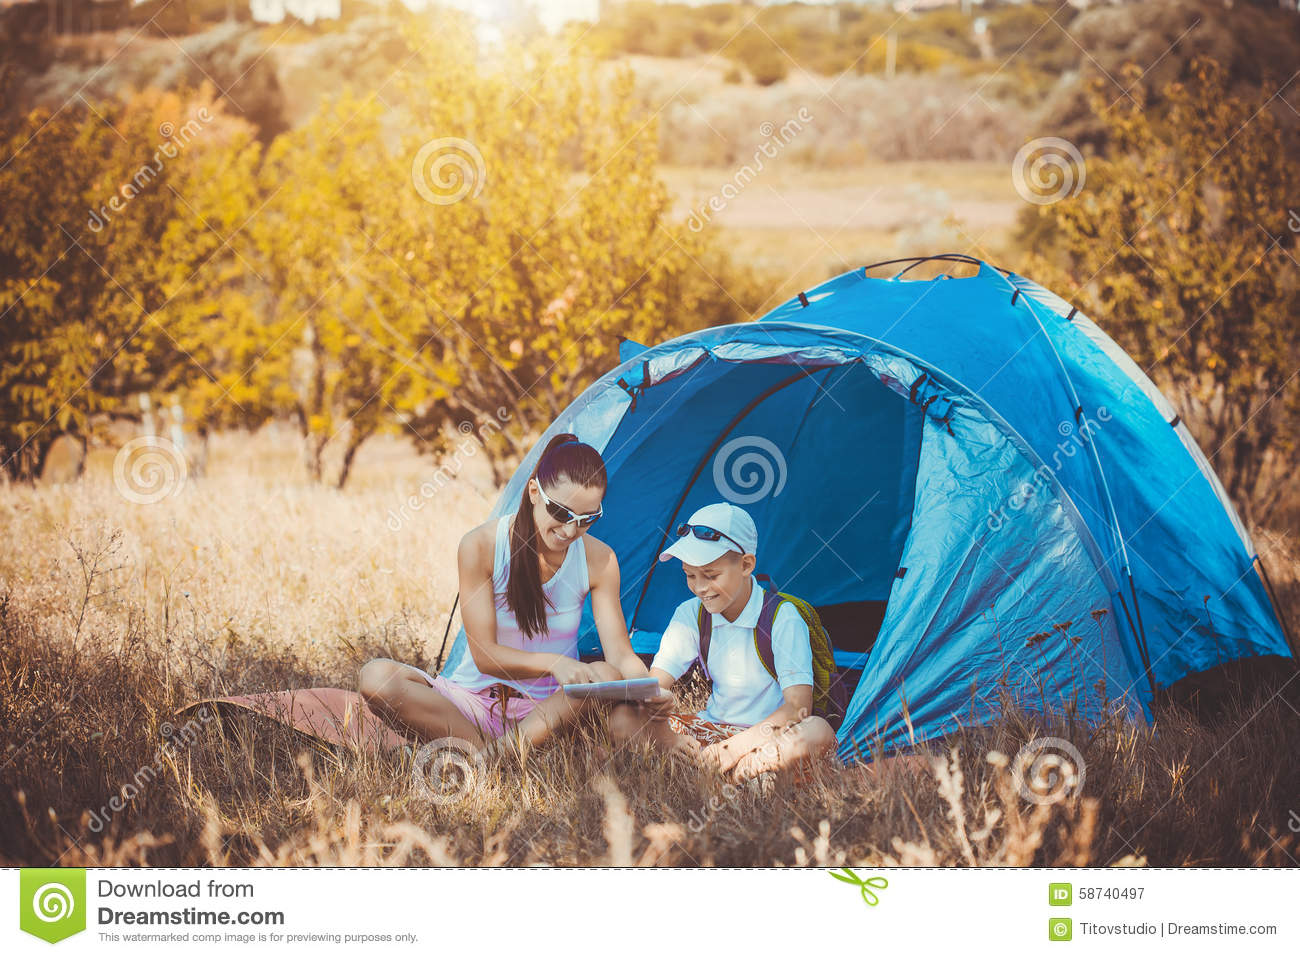 son camping and Mom